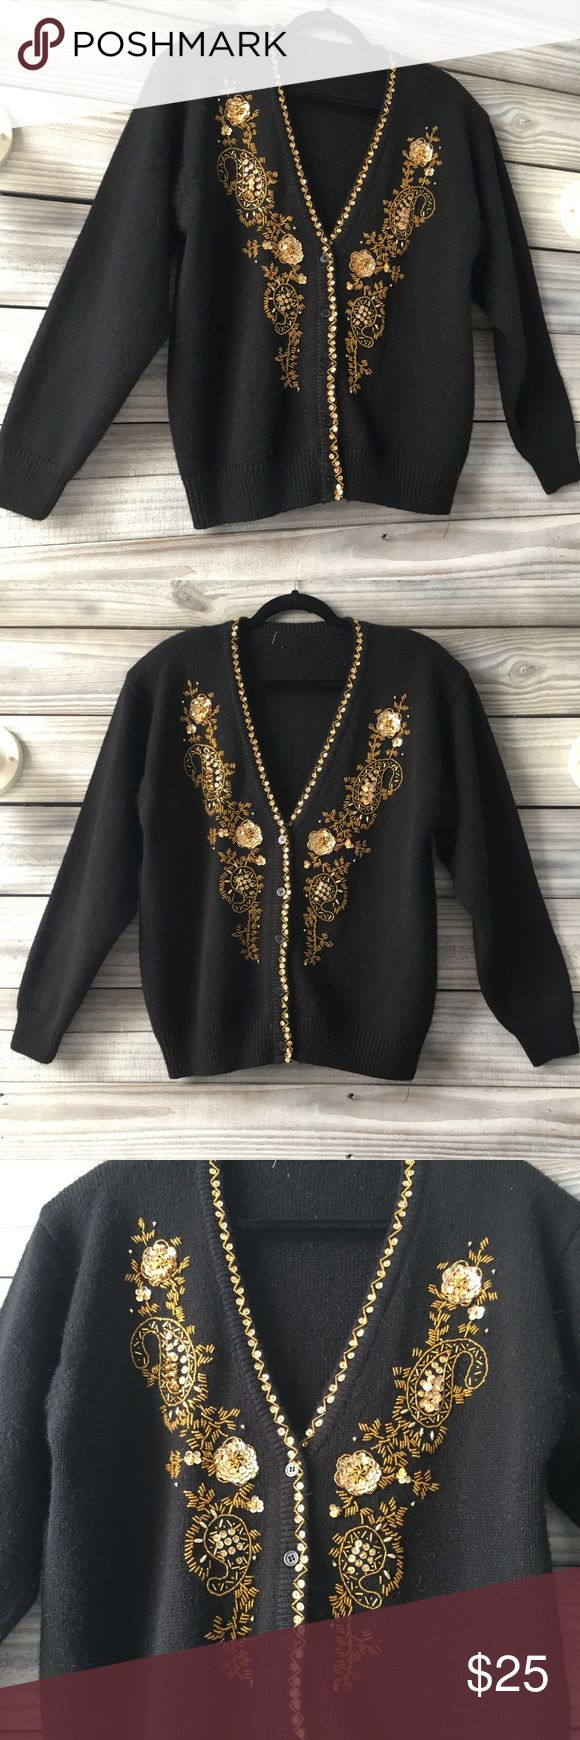 Vintage Black & Gold Cardigan Gold sequins & beading embroidery kick this cardigan up to rockstar status! Shoulder pads and all!! Tags are removed, would fit up to XL Vintage Sweaters Cardigans